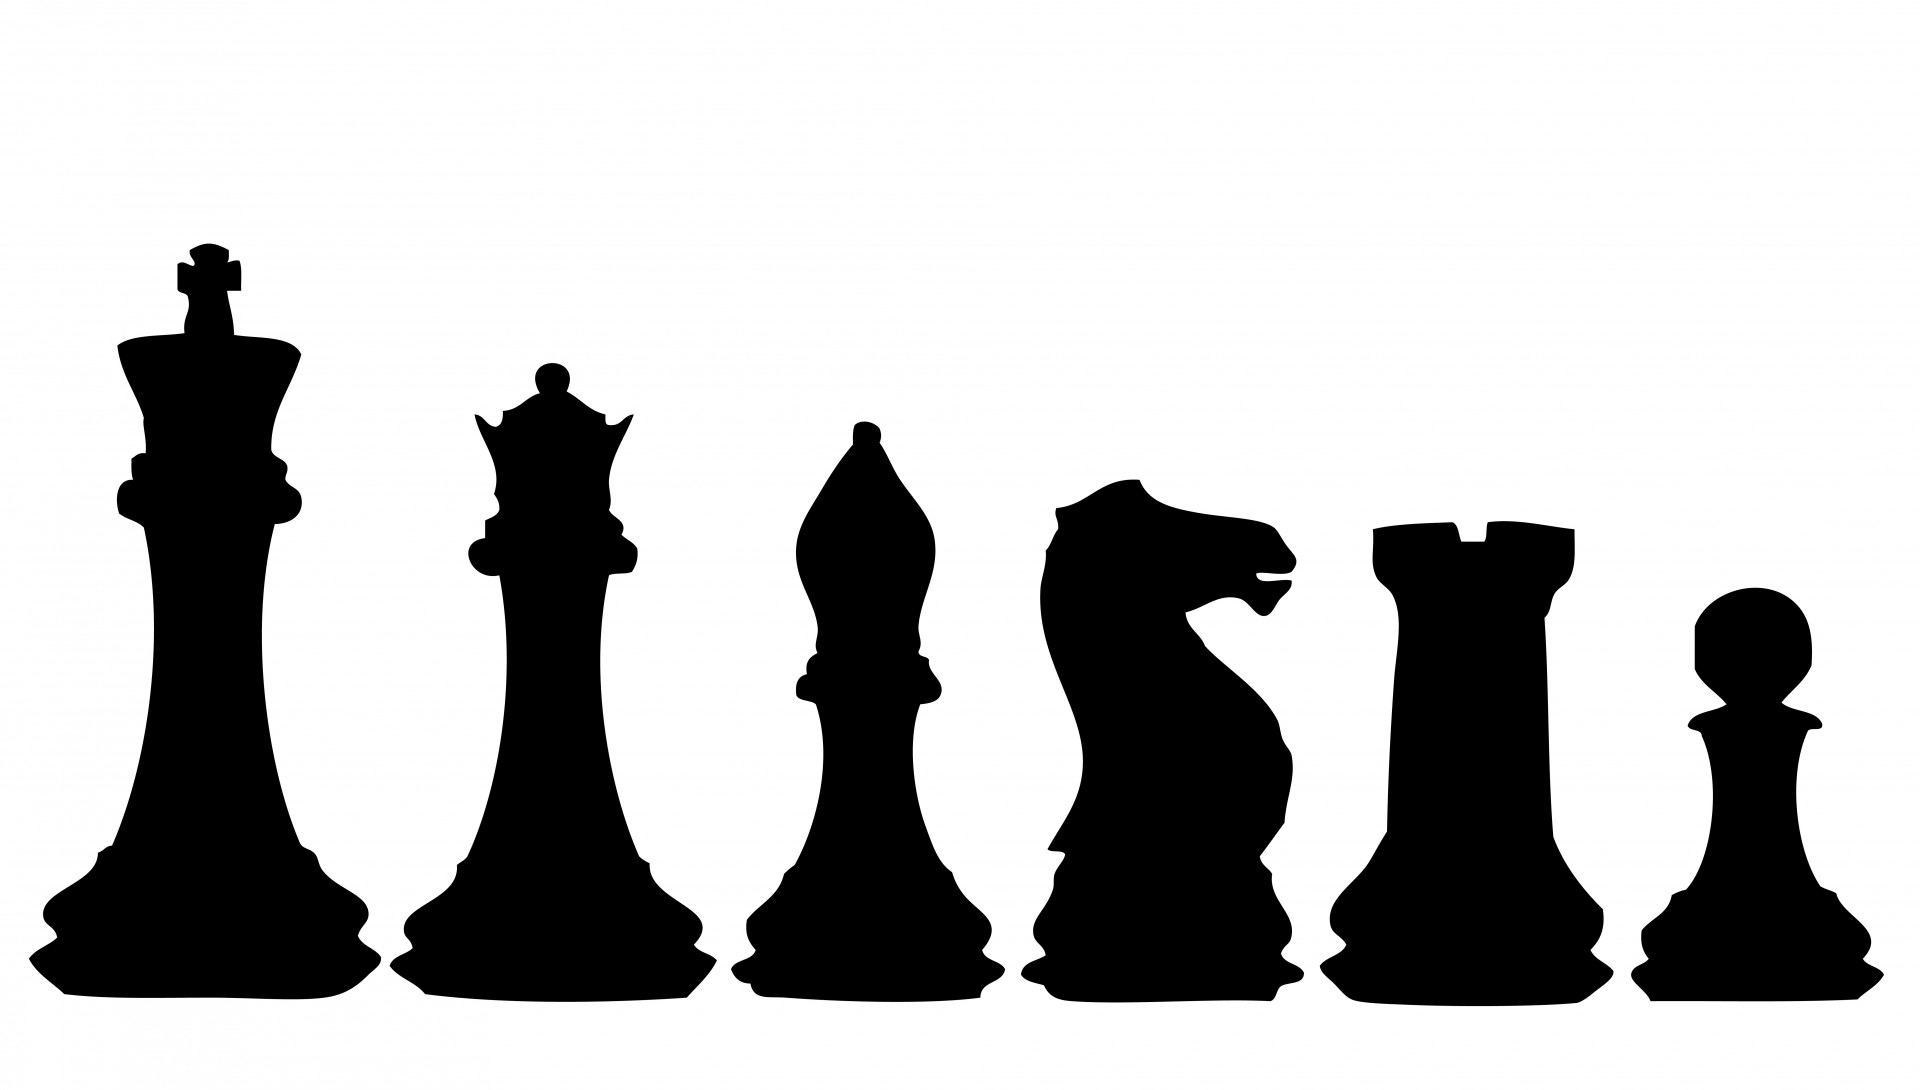 Chess Pieces Clipart Free Stock Photo.